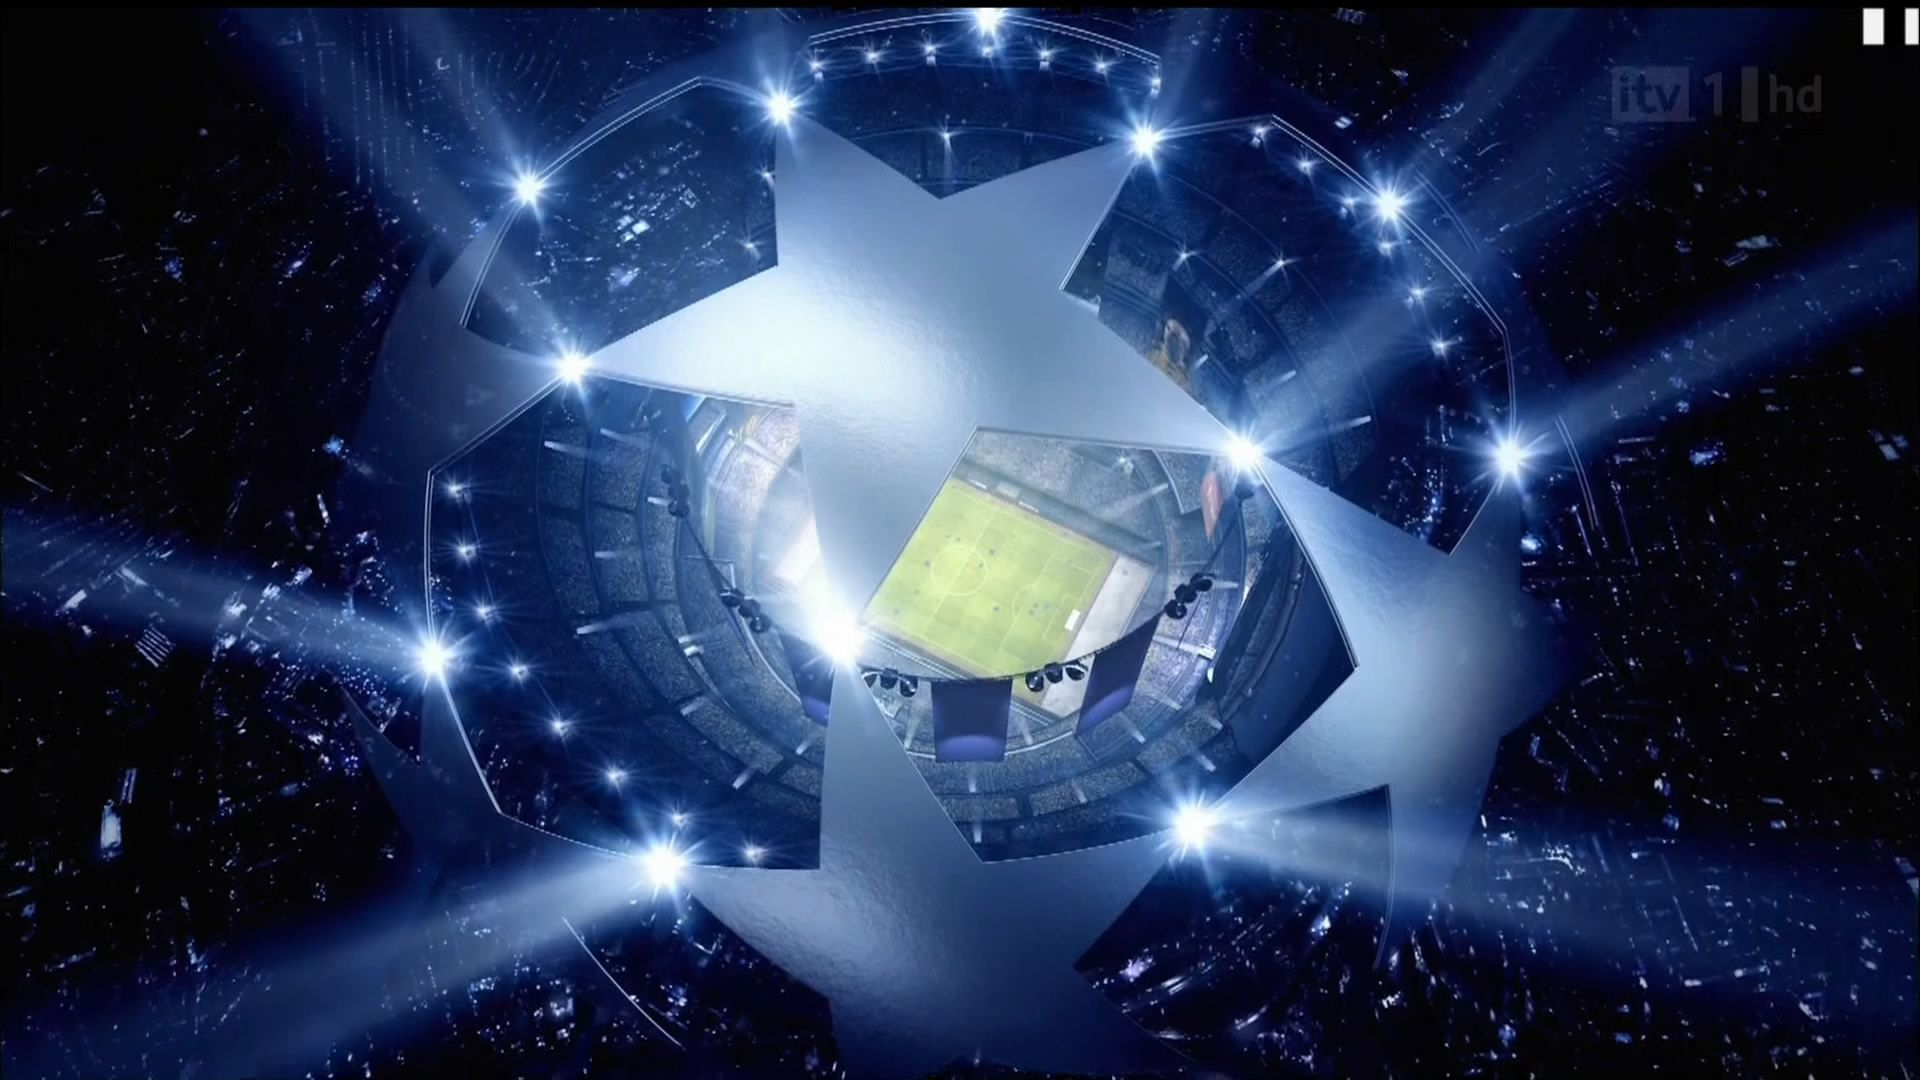 Uefa Champions League Wallpapers 1920x1080